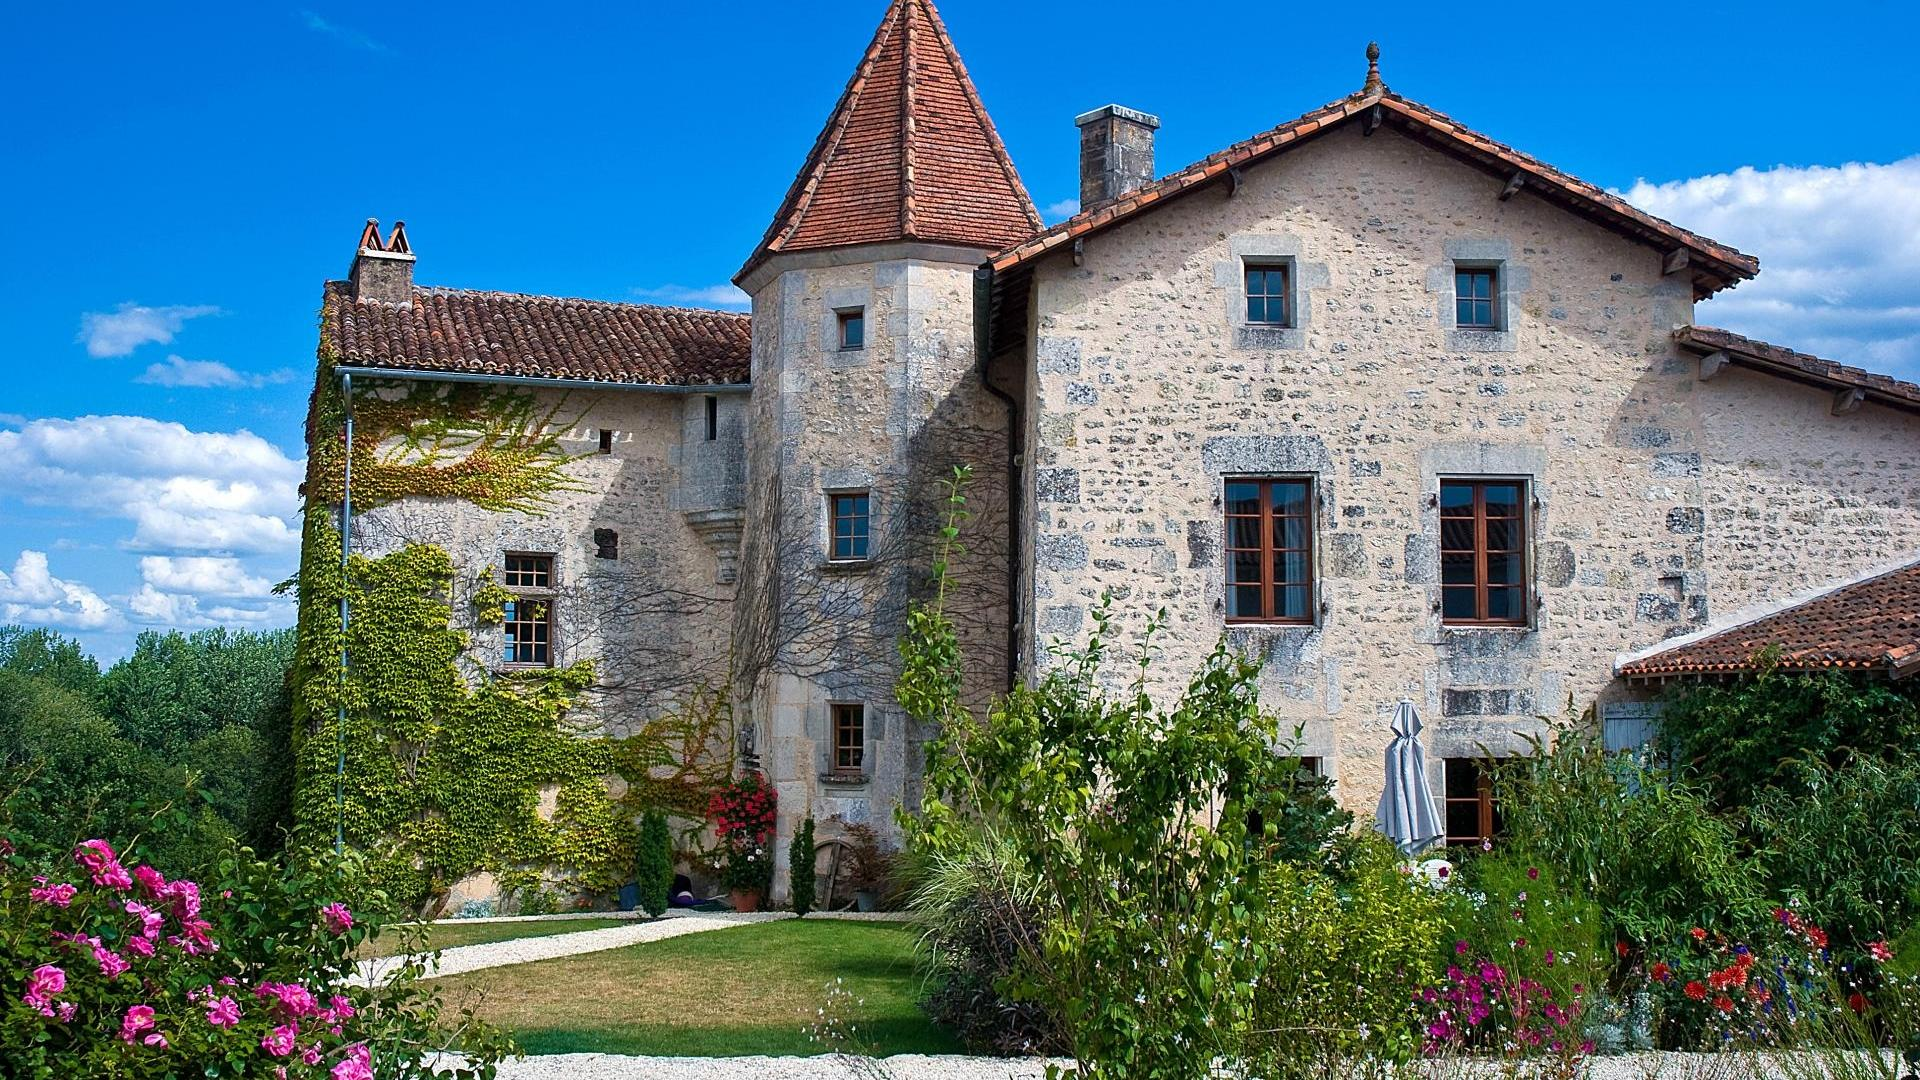 2 bedroom baby friendly holiday cottage in the Charente France - DNJR